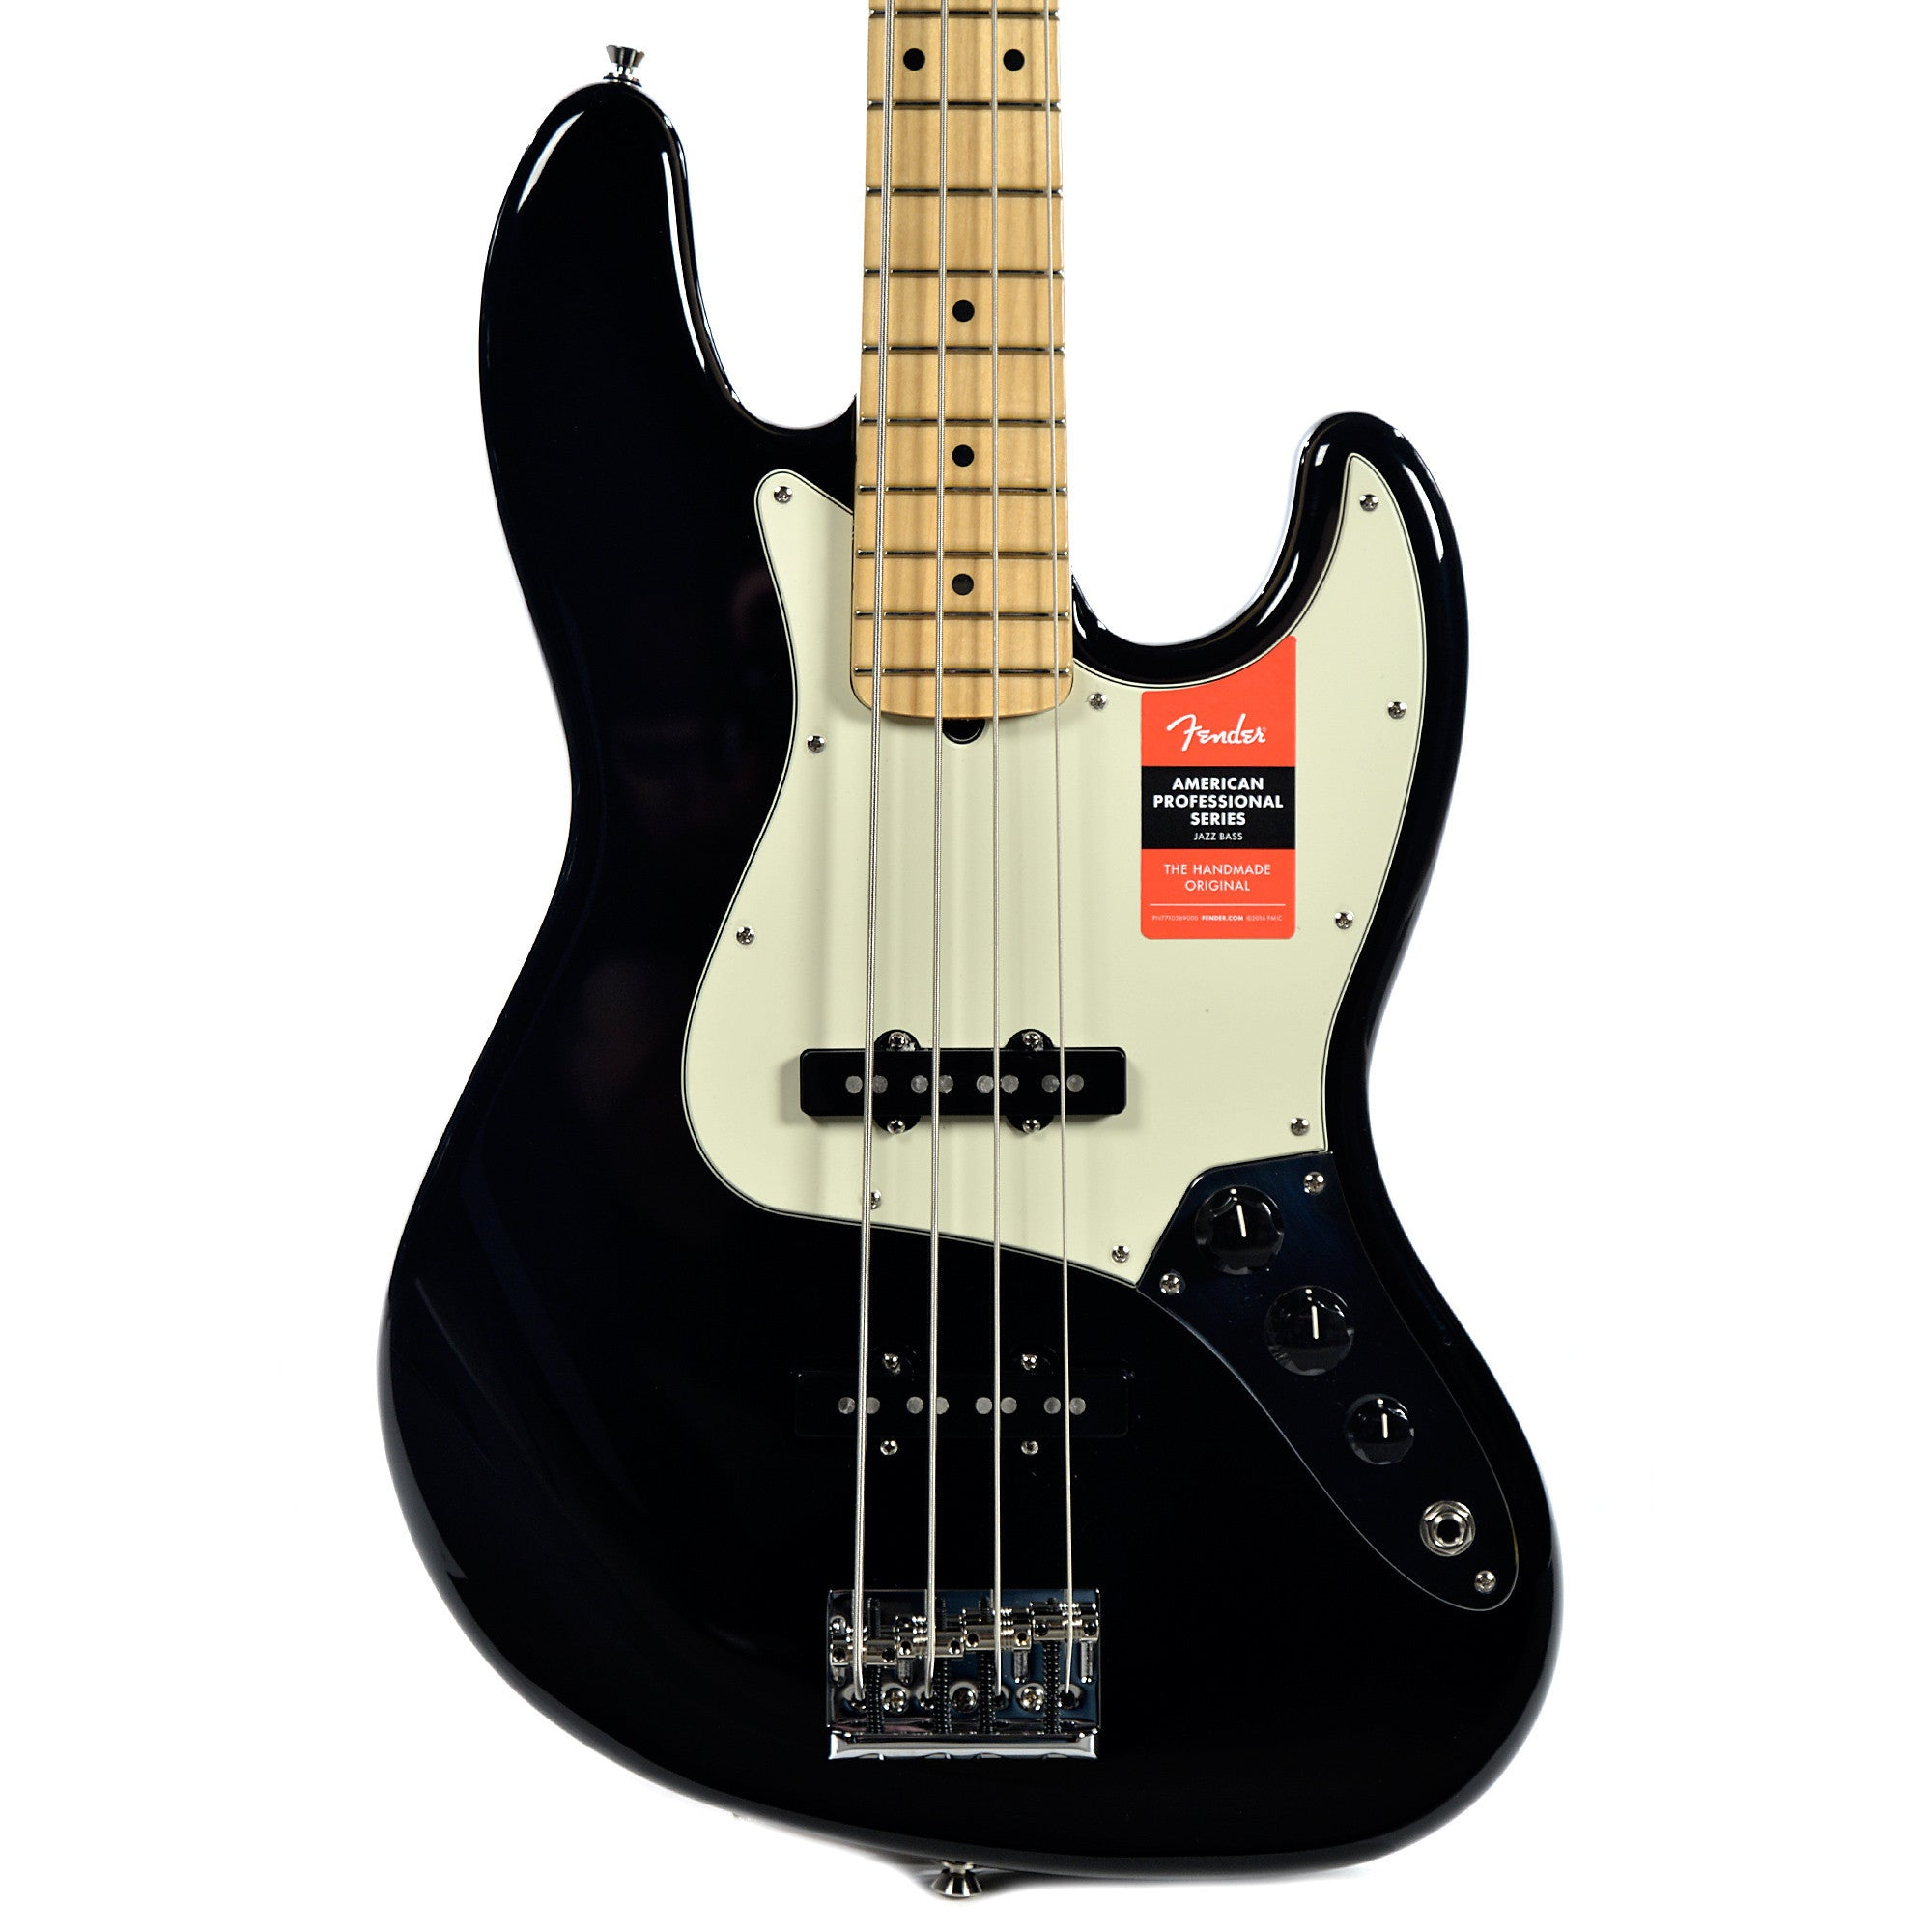 Squier Affinity Telecaster Wiring Diagram Free For Active Pickup Diagrams Jaguar Fender Special Hh Blacktop Seymour Duncan Classic Vibe